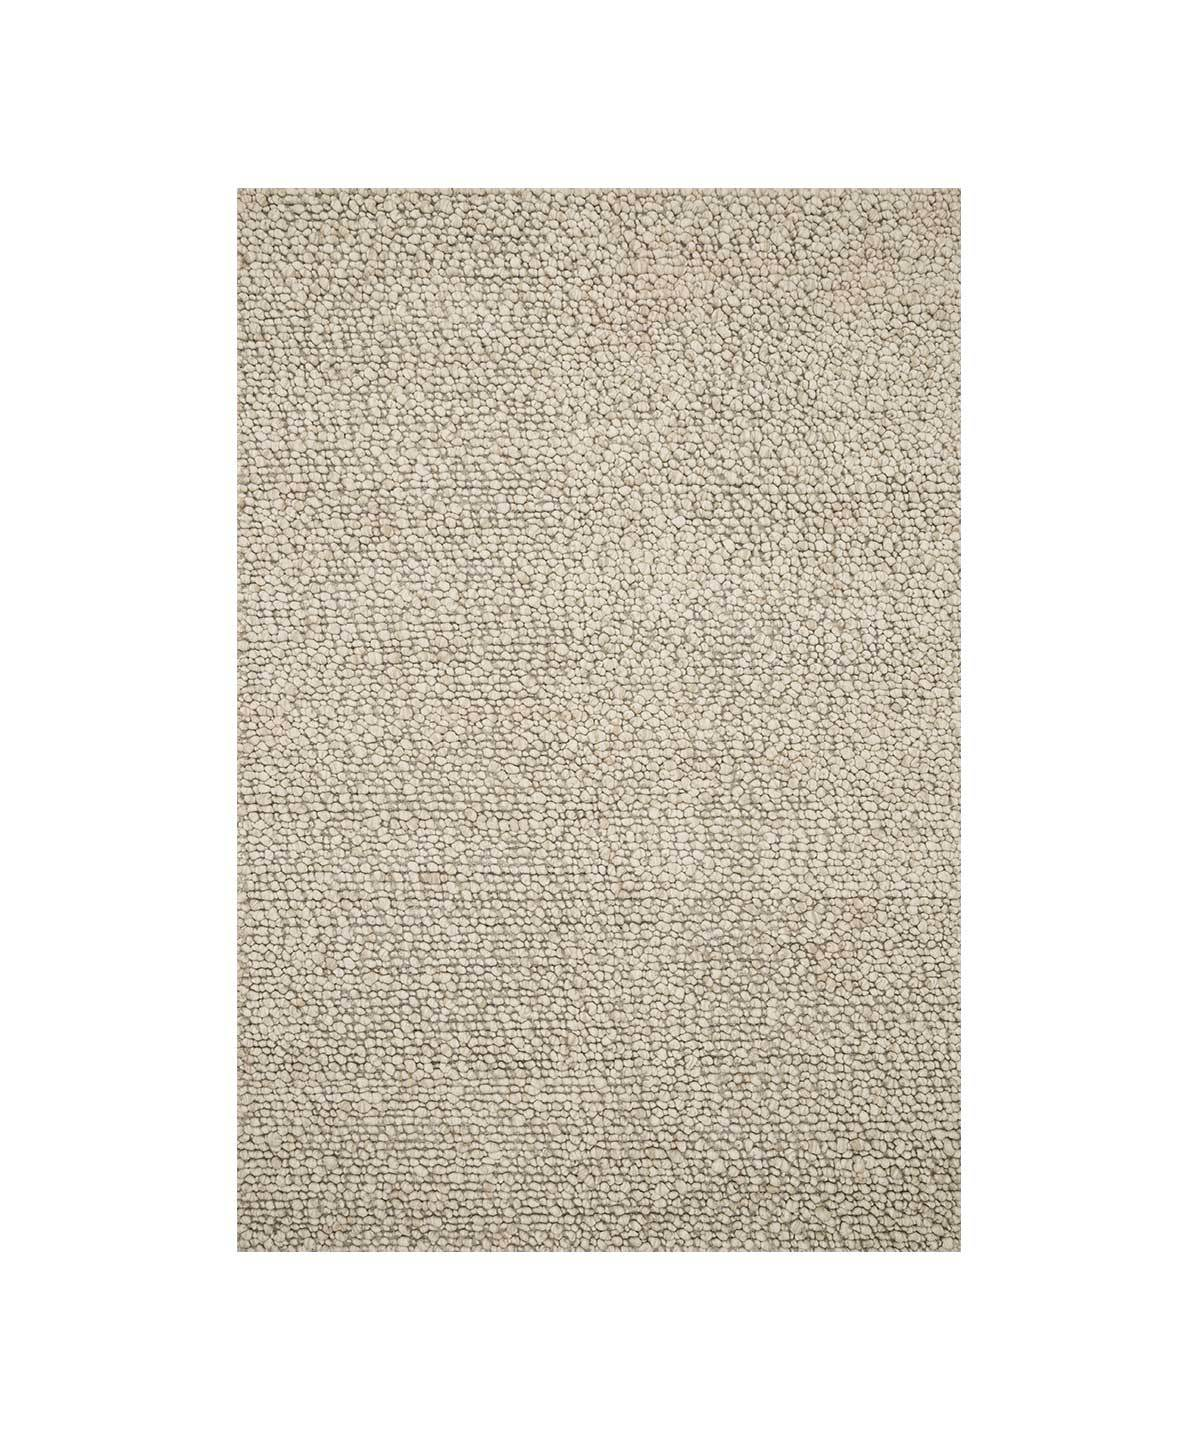 Quarry Rug in Oatmeal by Loloi | TRNK